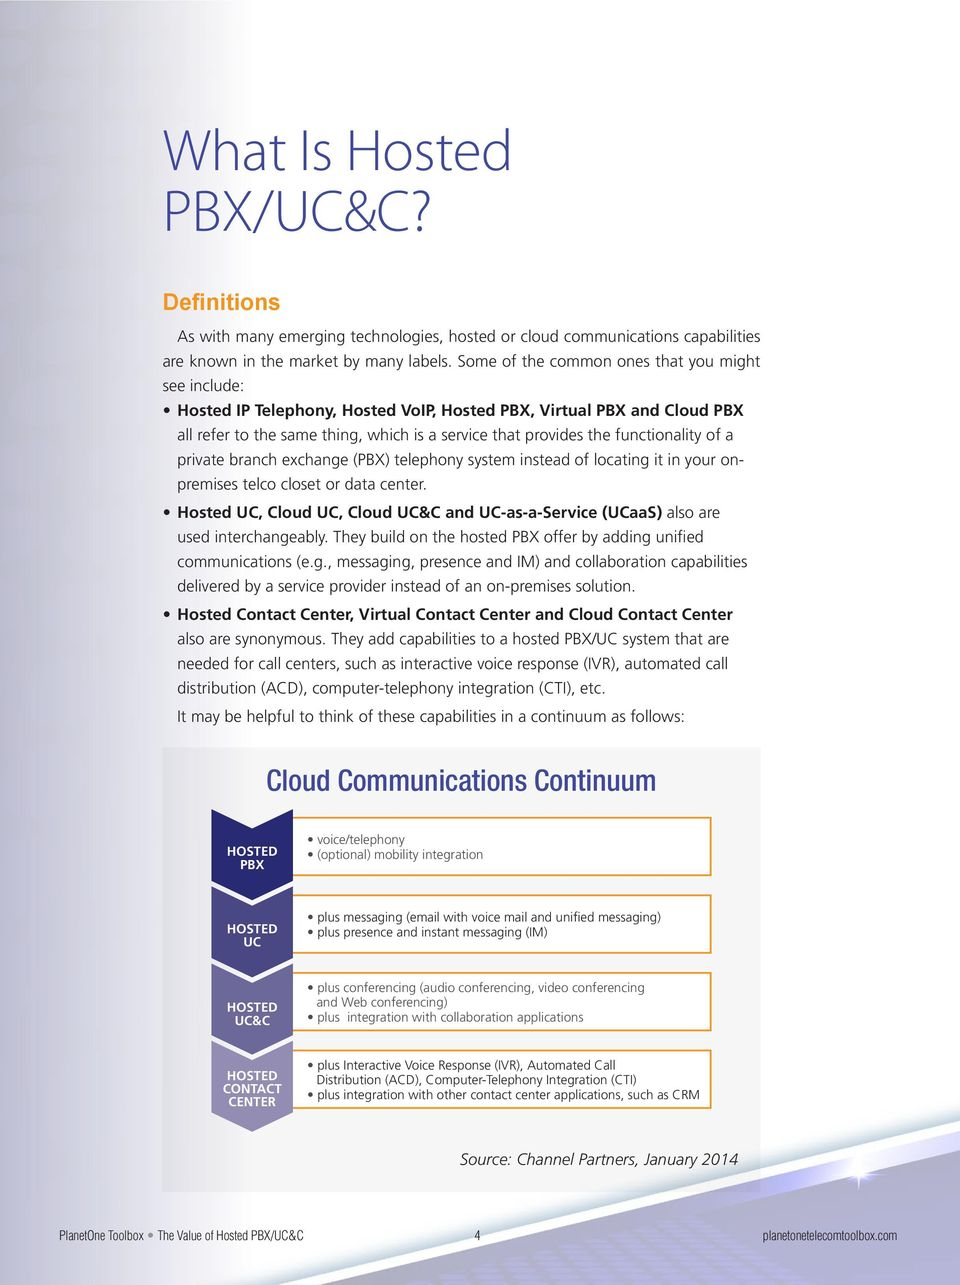 functionality of a private branch exchange (PBX) telephony system instead of locating it in your onpremises telco closet or data center.